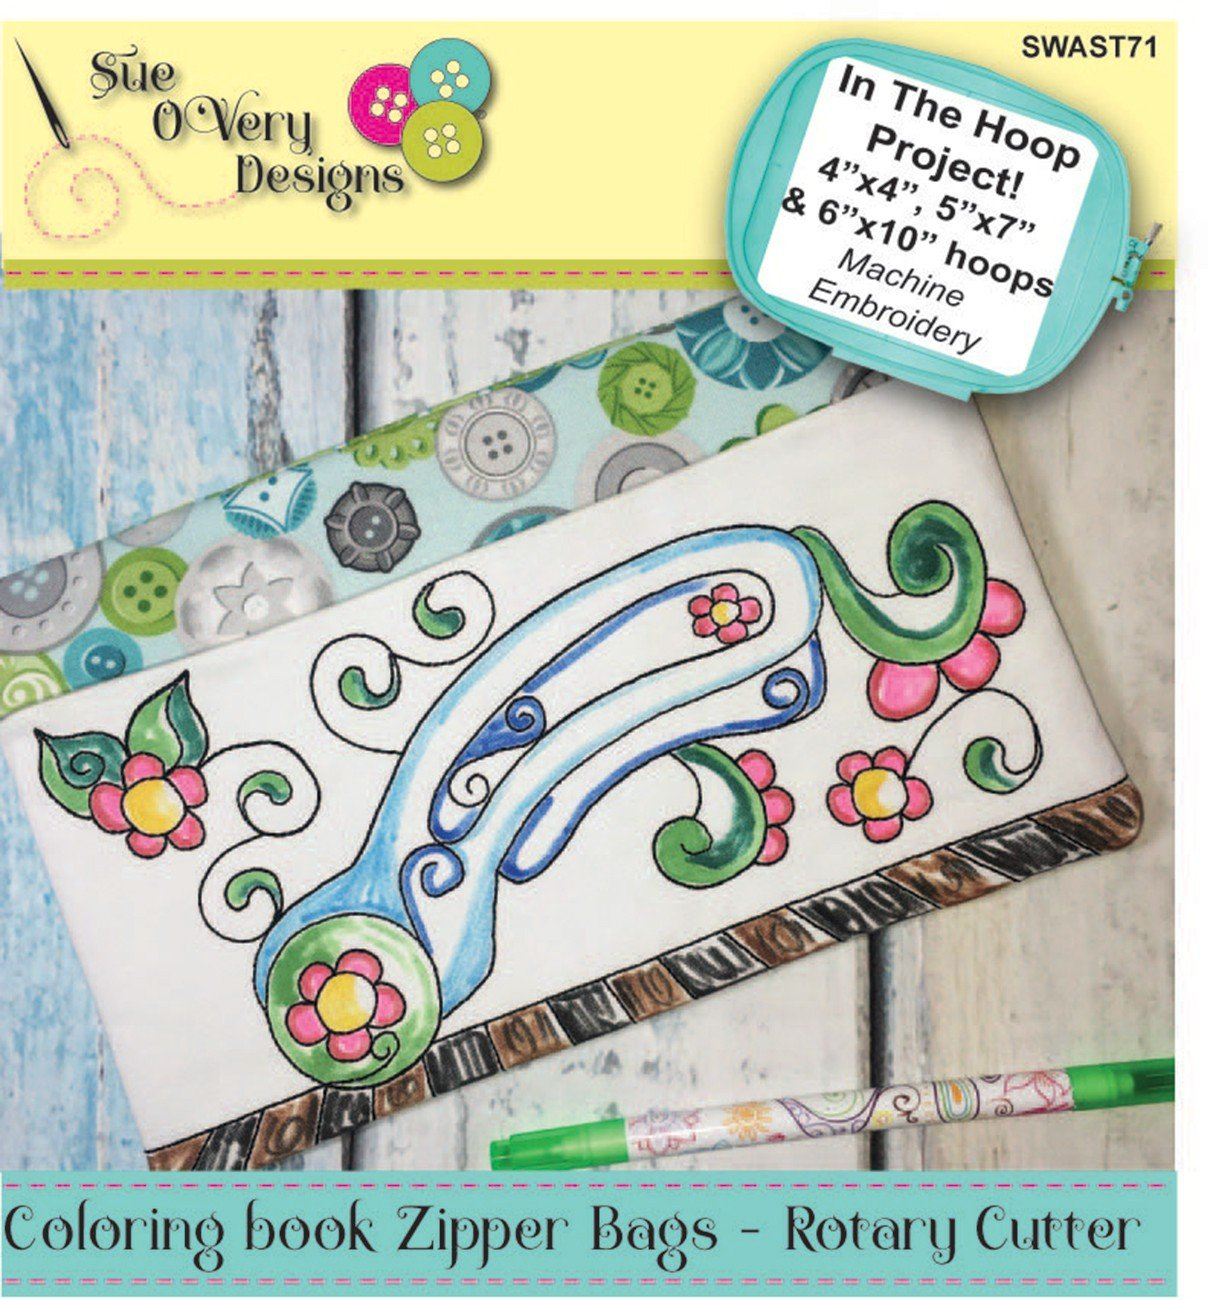 CD Coloring Book Zipper Pouch In the Hoop - Rotary Cutter